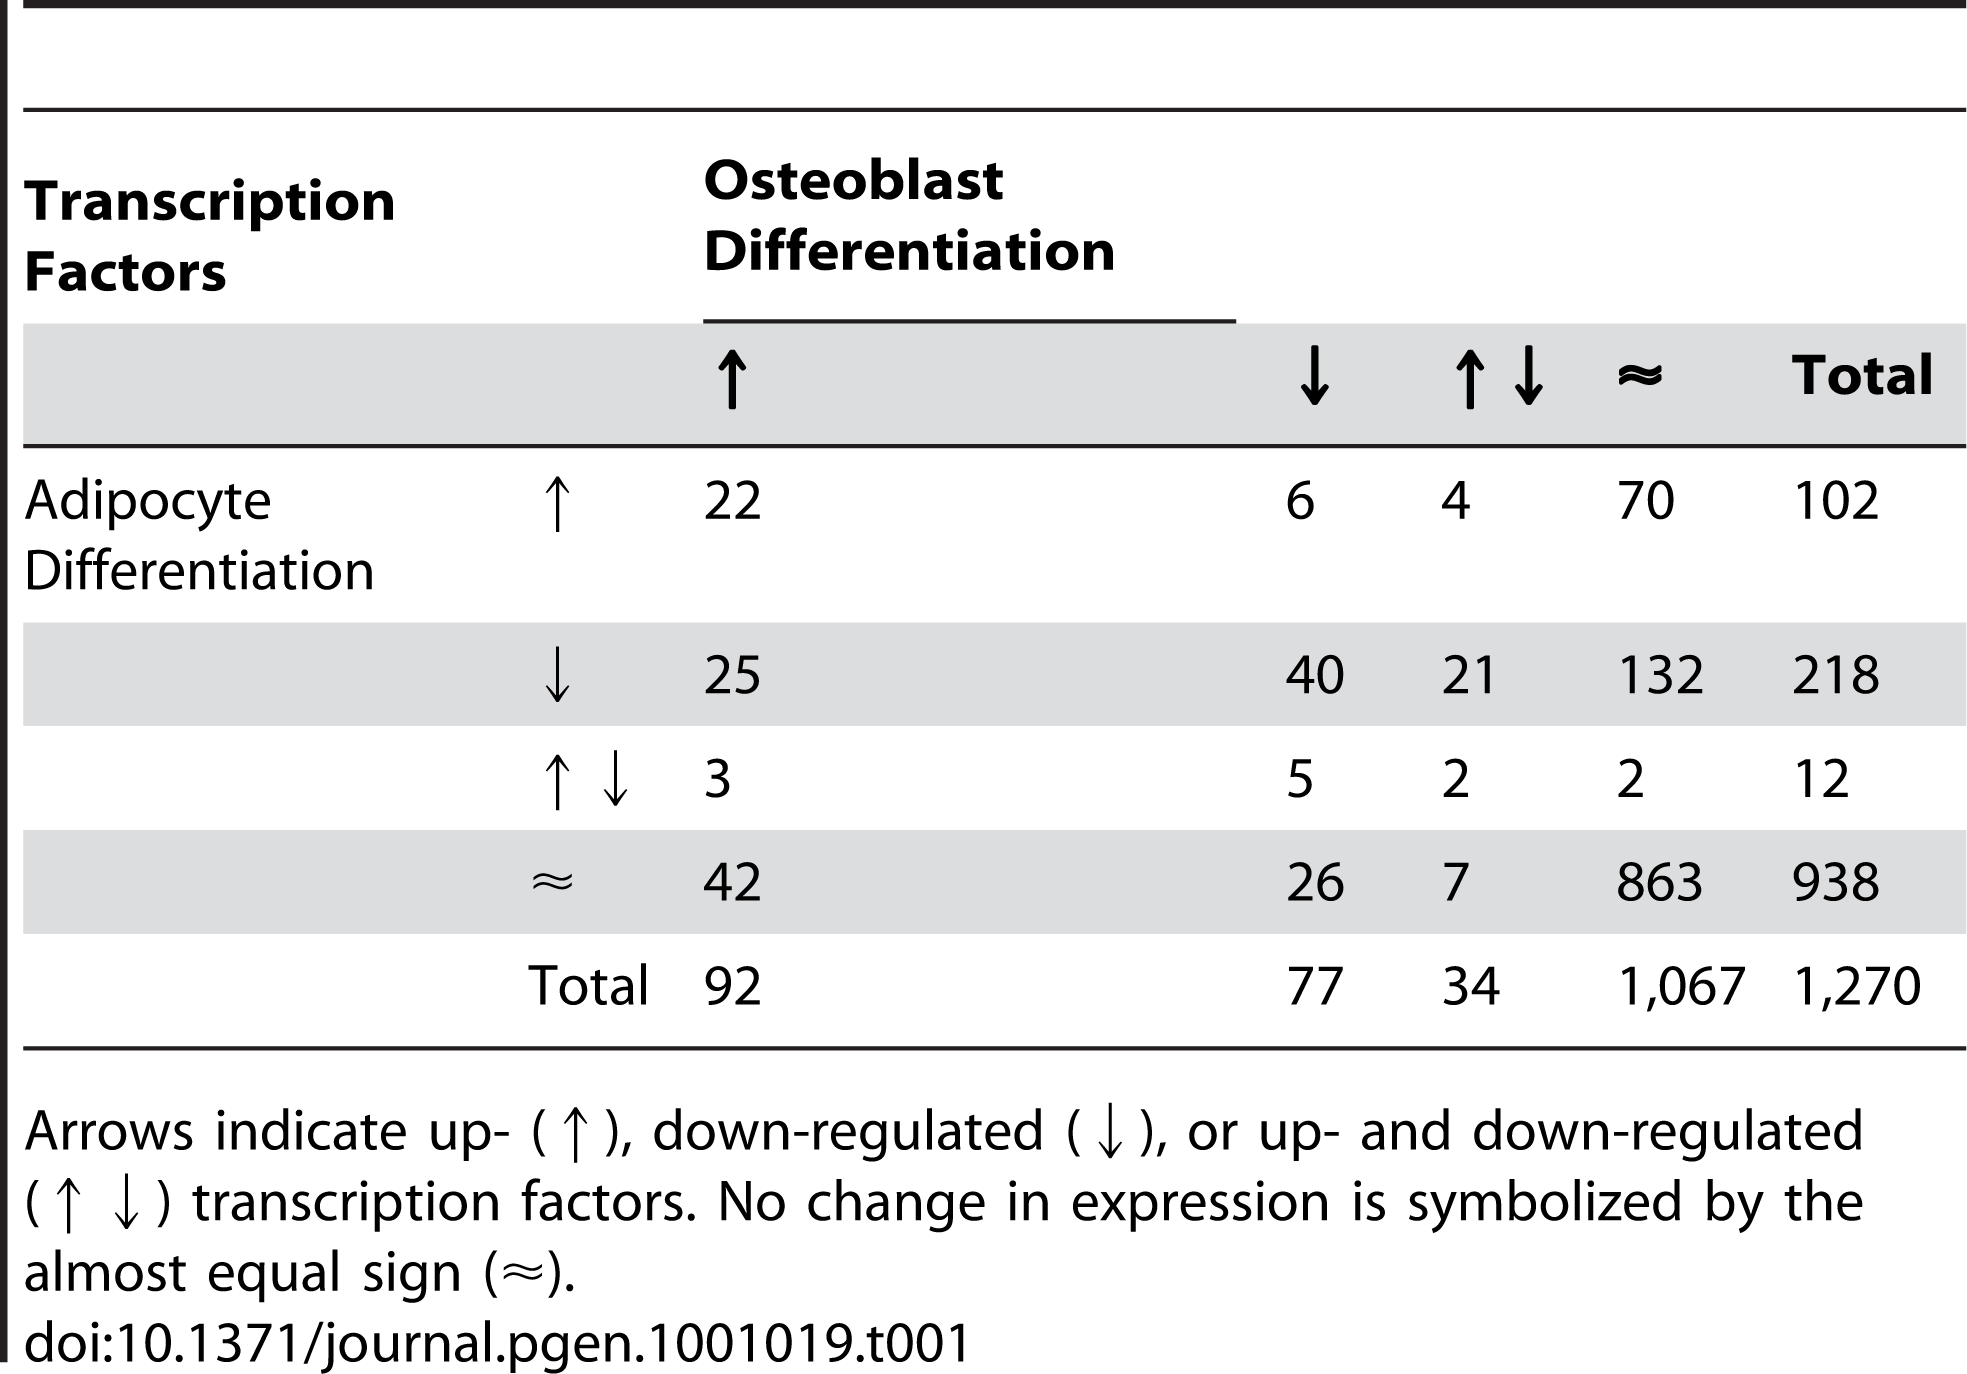 Expression behavior of 1,270 transcription factors selected from all mouse genes (Ensembl release 52) based on GO IDs (<em class=&quot;ref&quot;>Table 3</em>) during osteoblast and adipocyte differentiation.